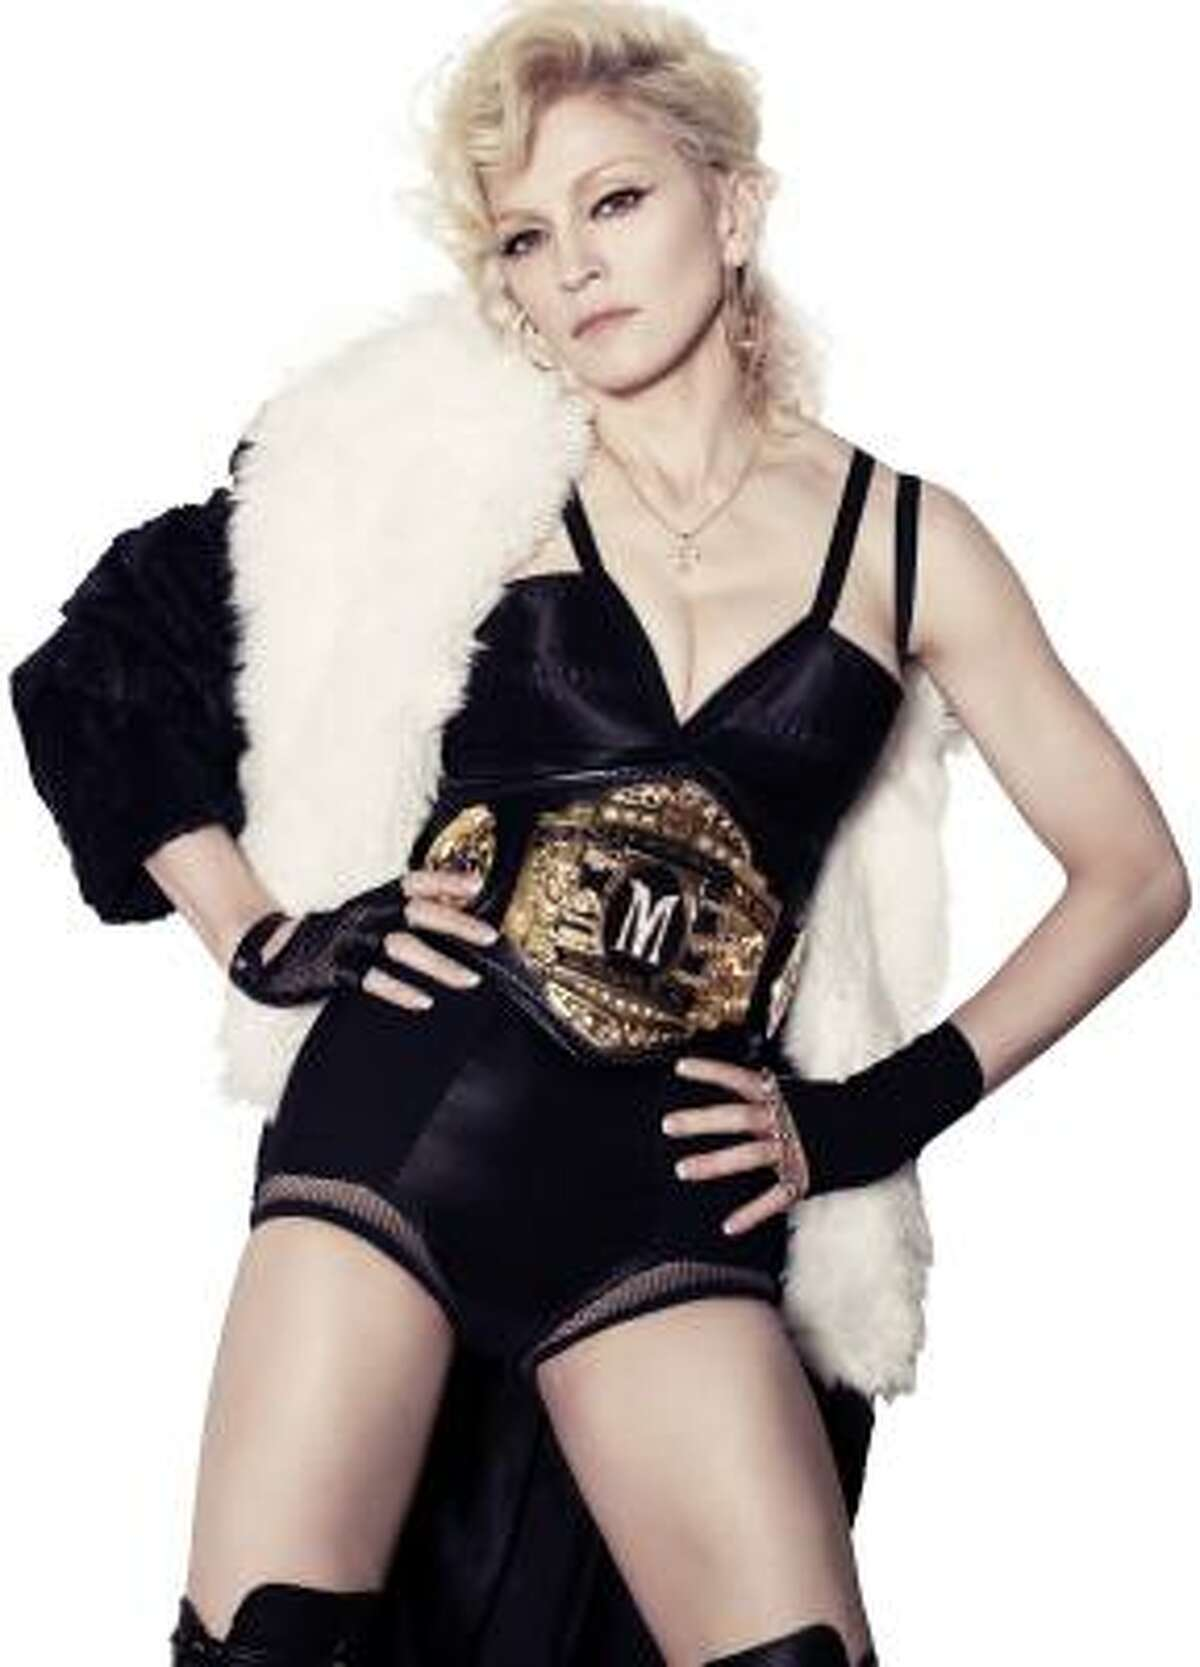 Madonna's latest is sure to get nonstop play at dance clubs.